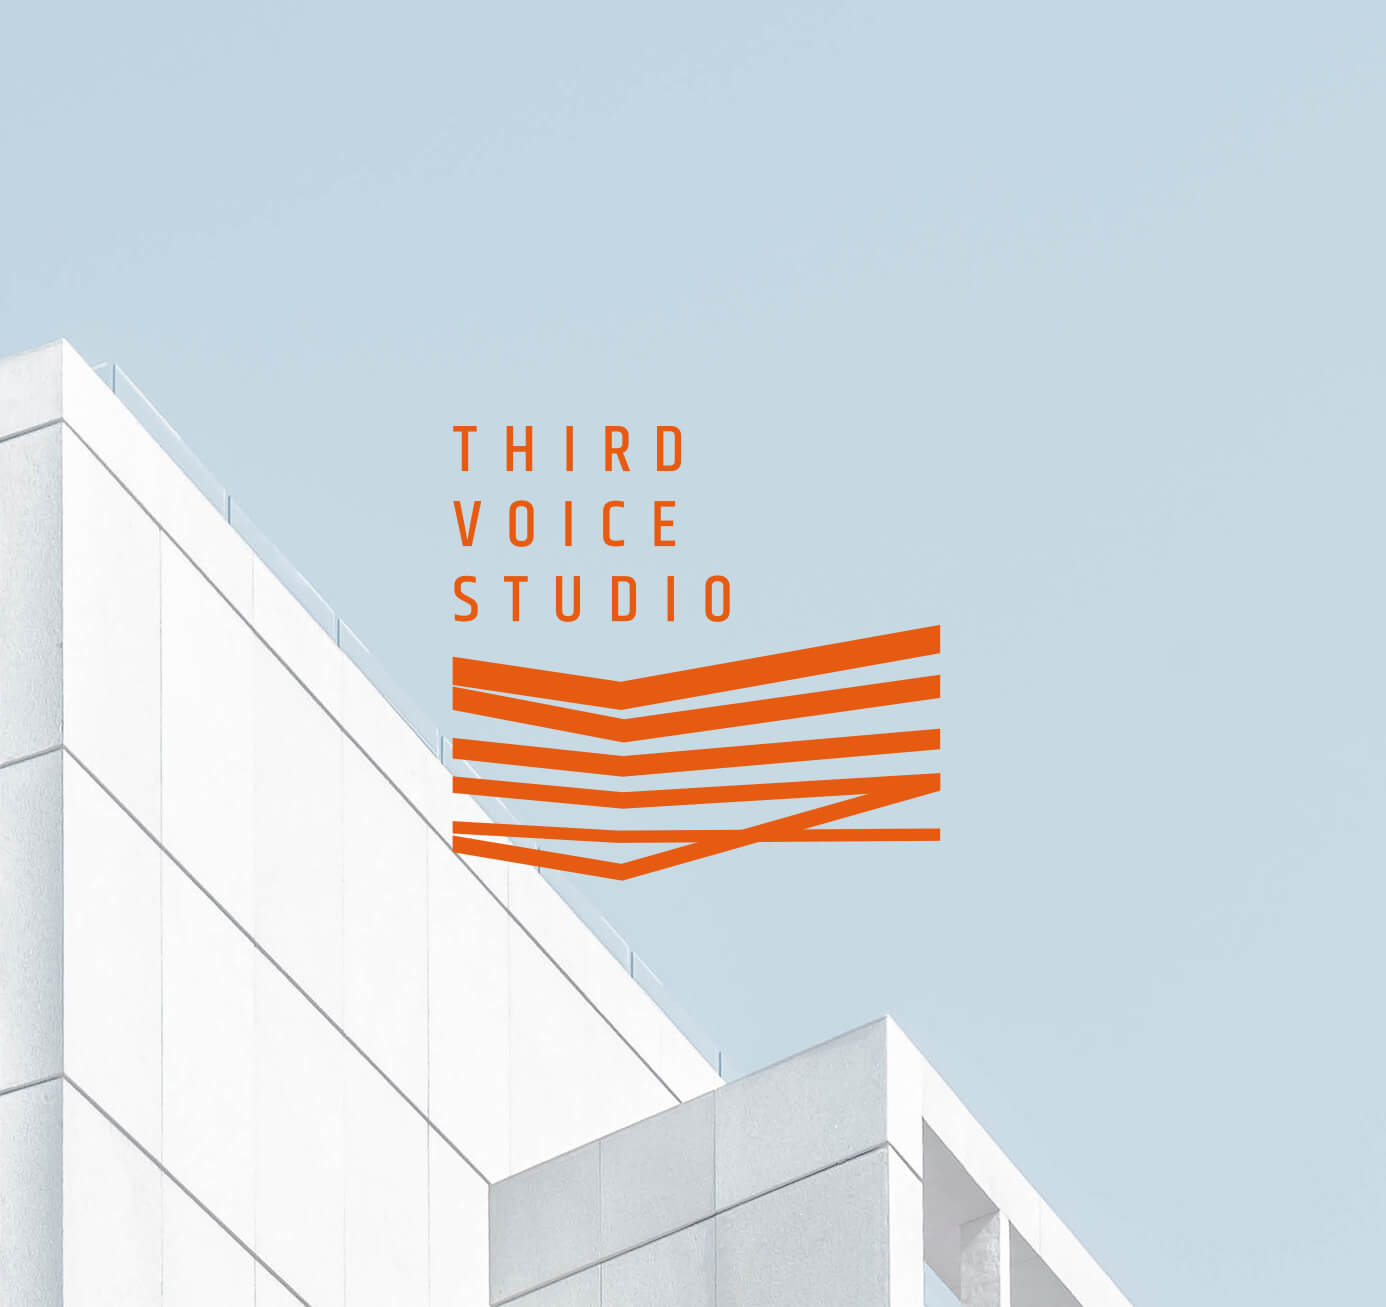 Third Voice Studio